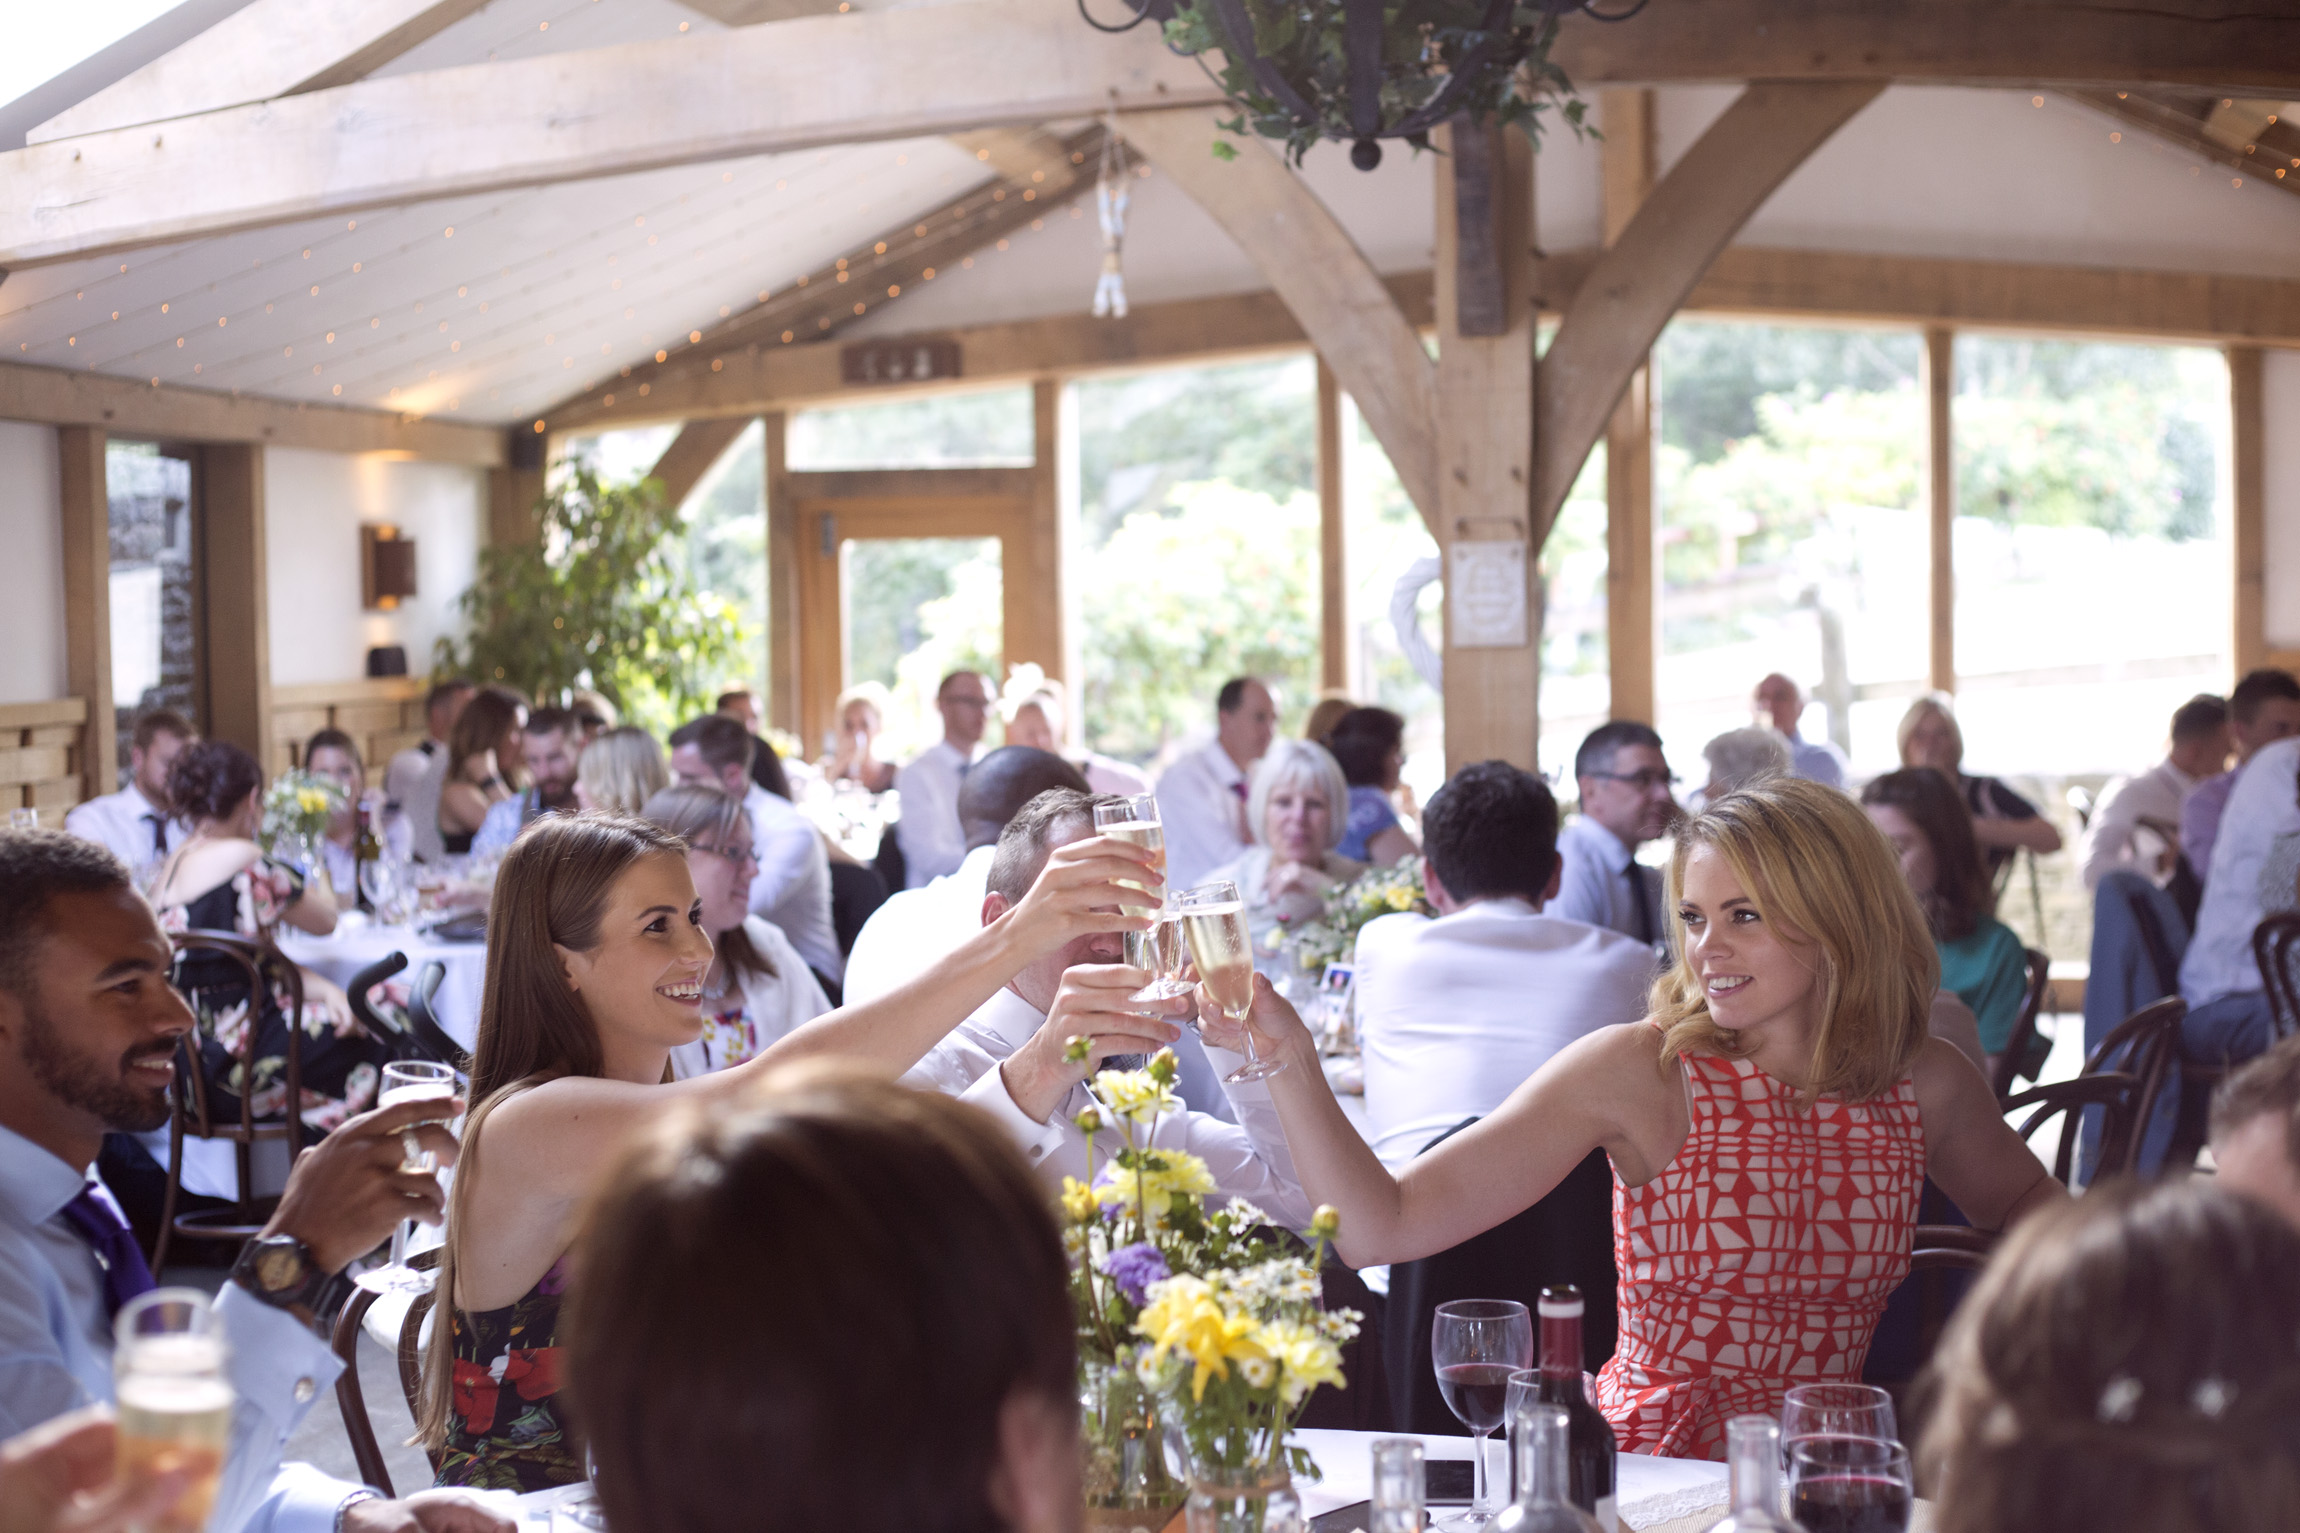 Guests toast at the speeches Cripps barn outdoor wedding photographer